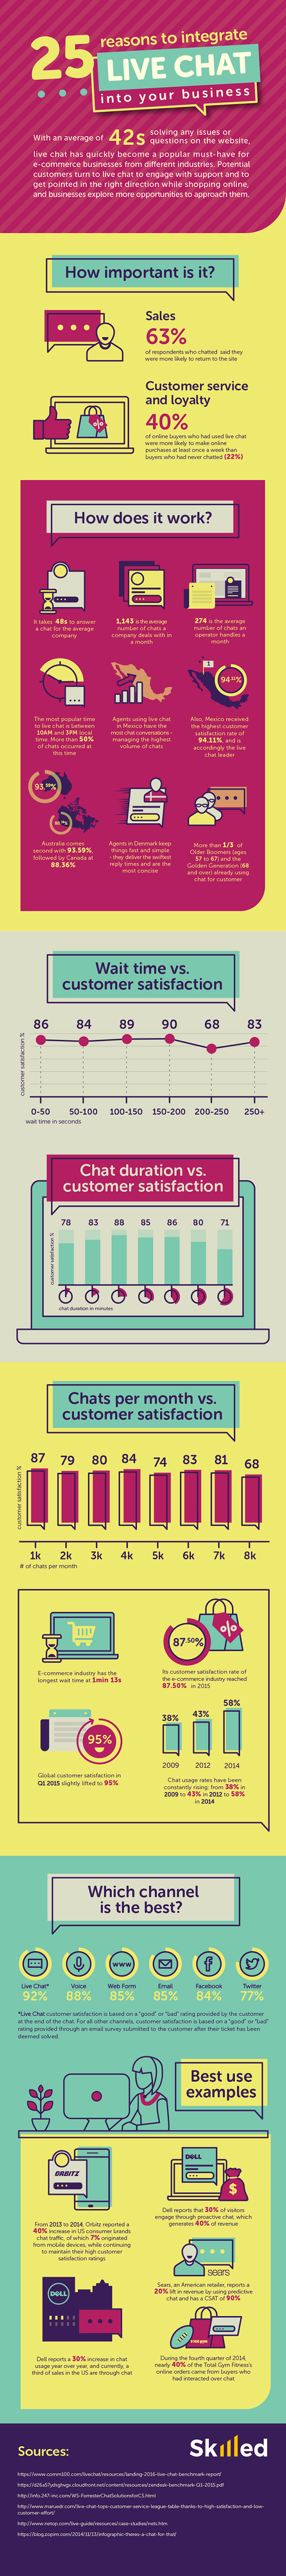 Live chat for eCommerce businesses